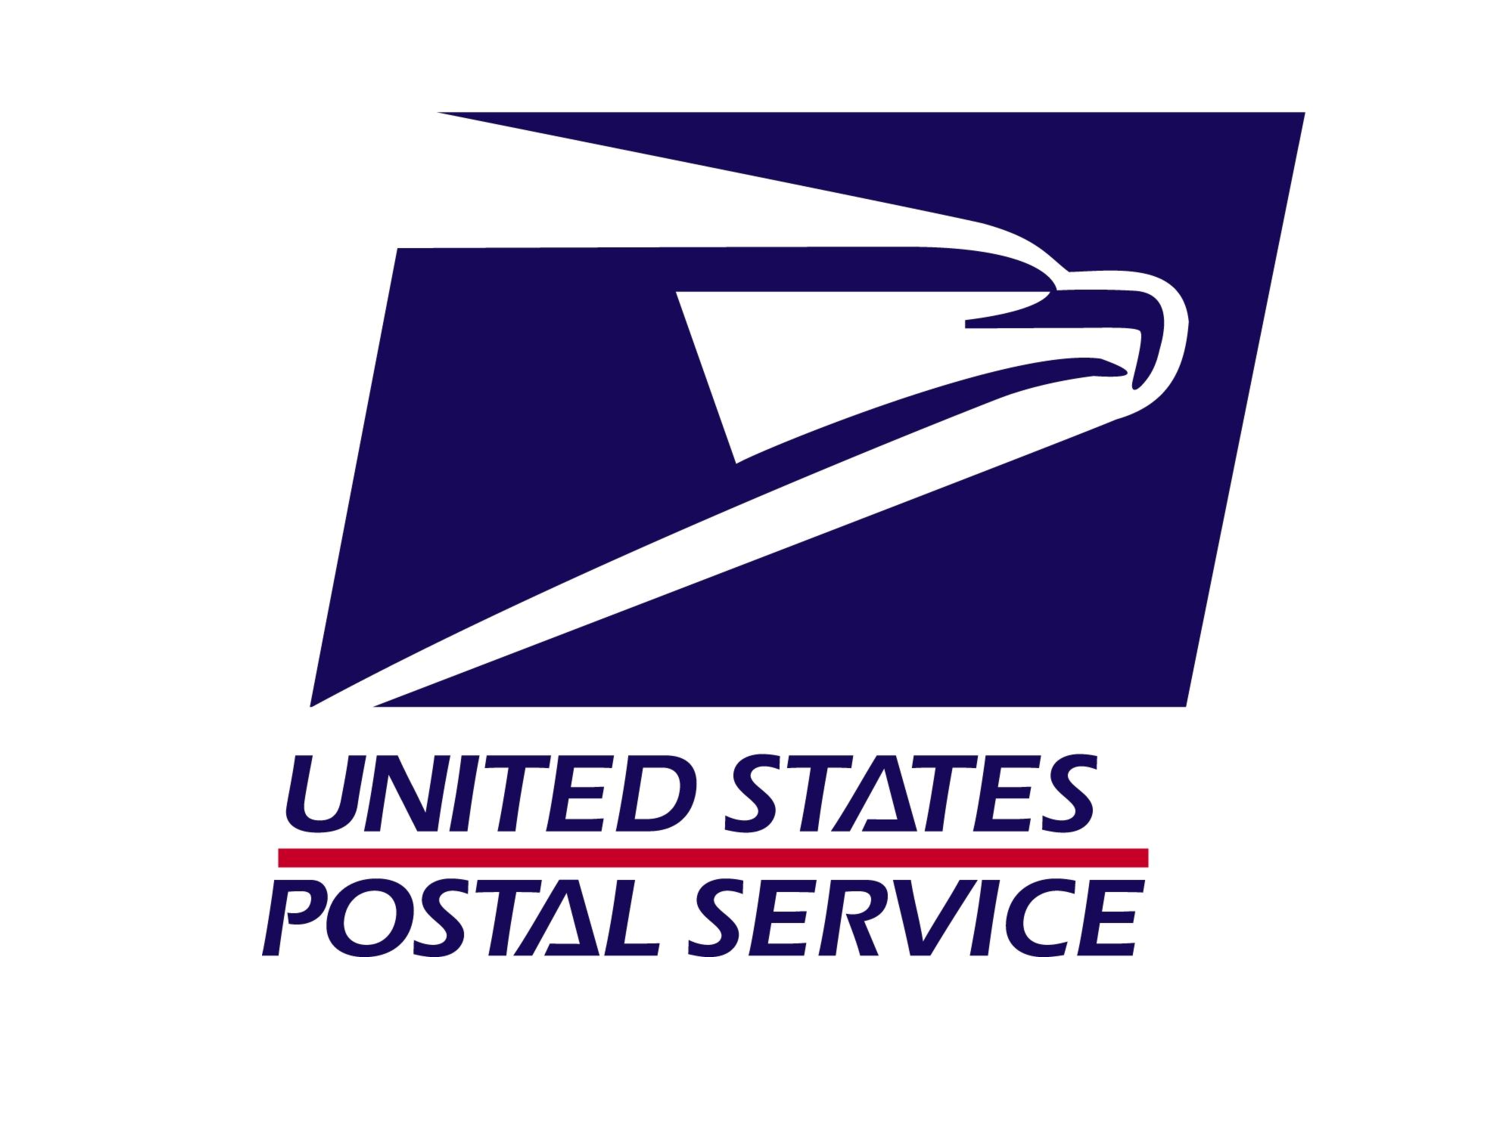 Postal Service Says It Is Victim Of Cyberattack Employee Data May